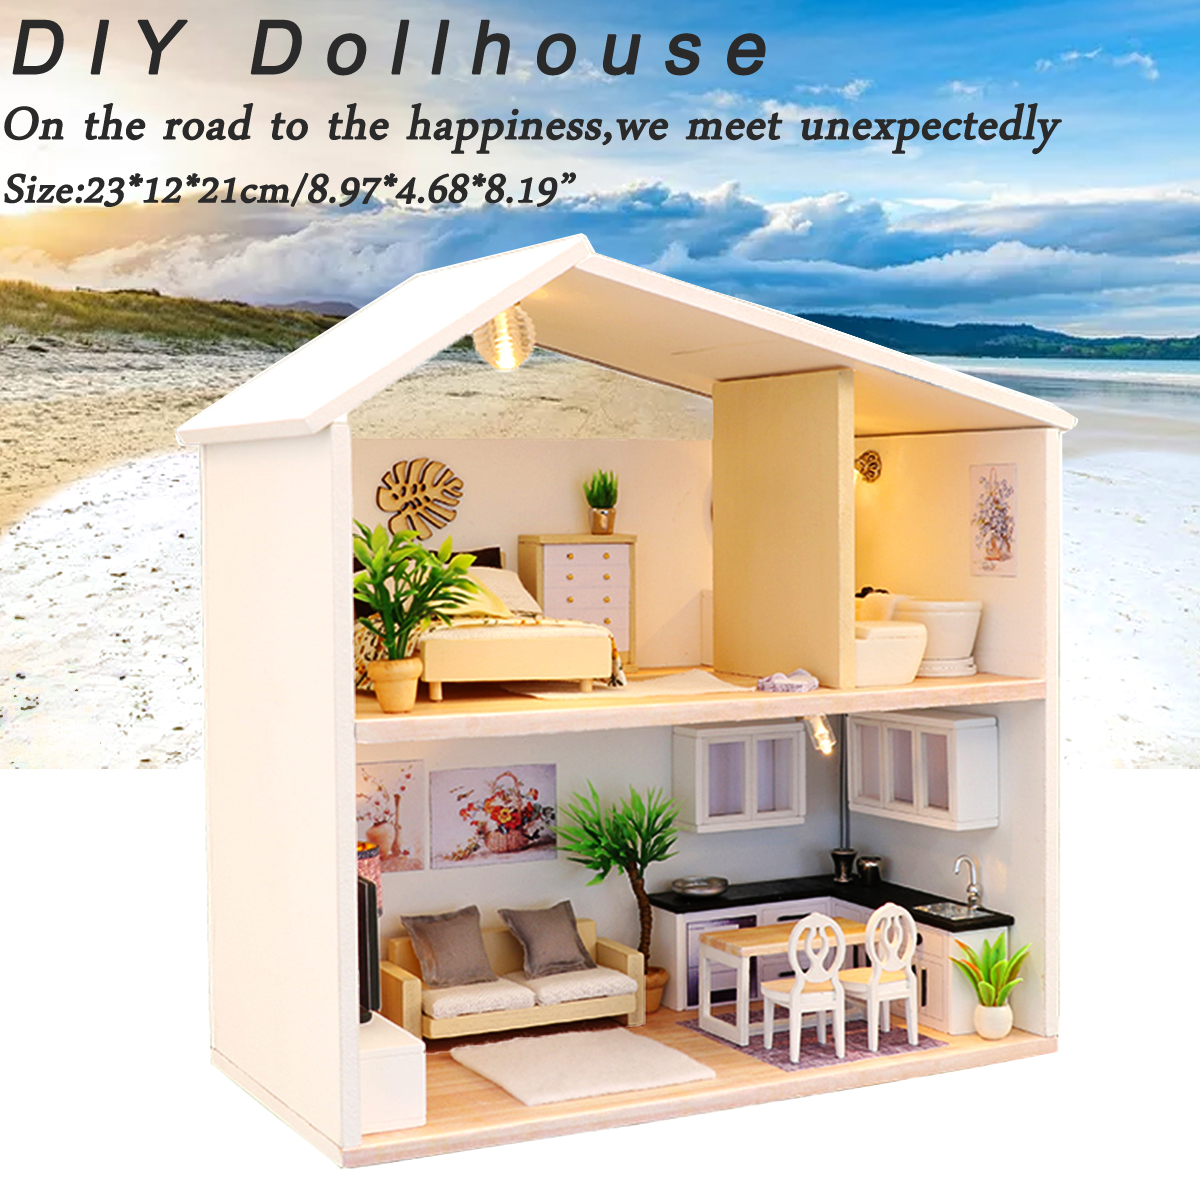 Details about diy miniature kit wooden toy model doll house modern house kid gift w led light